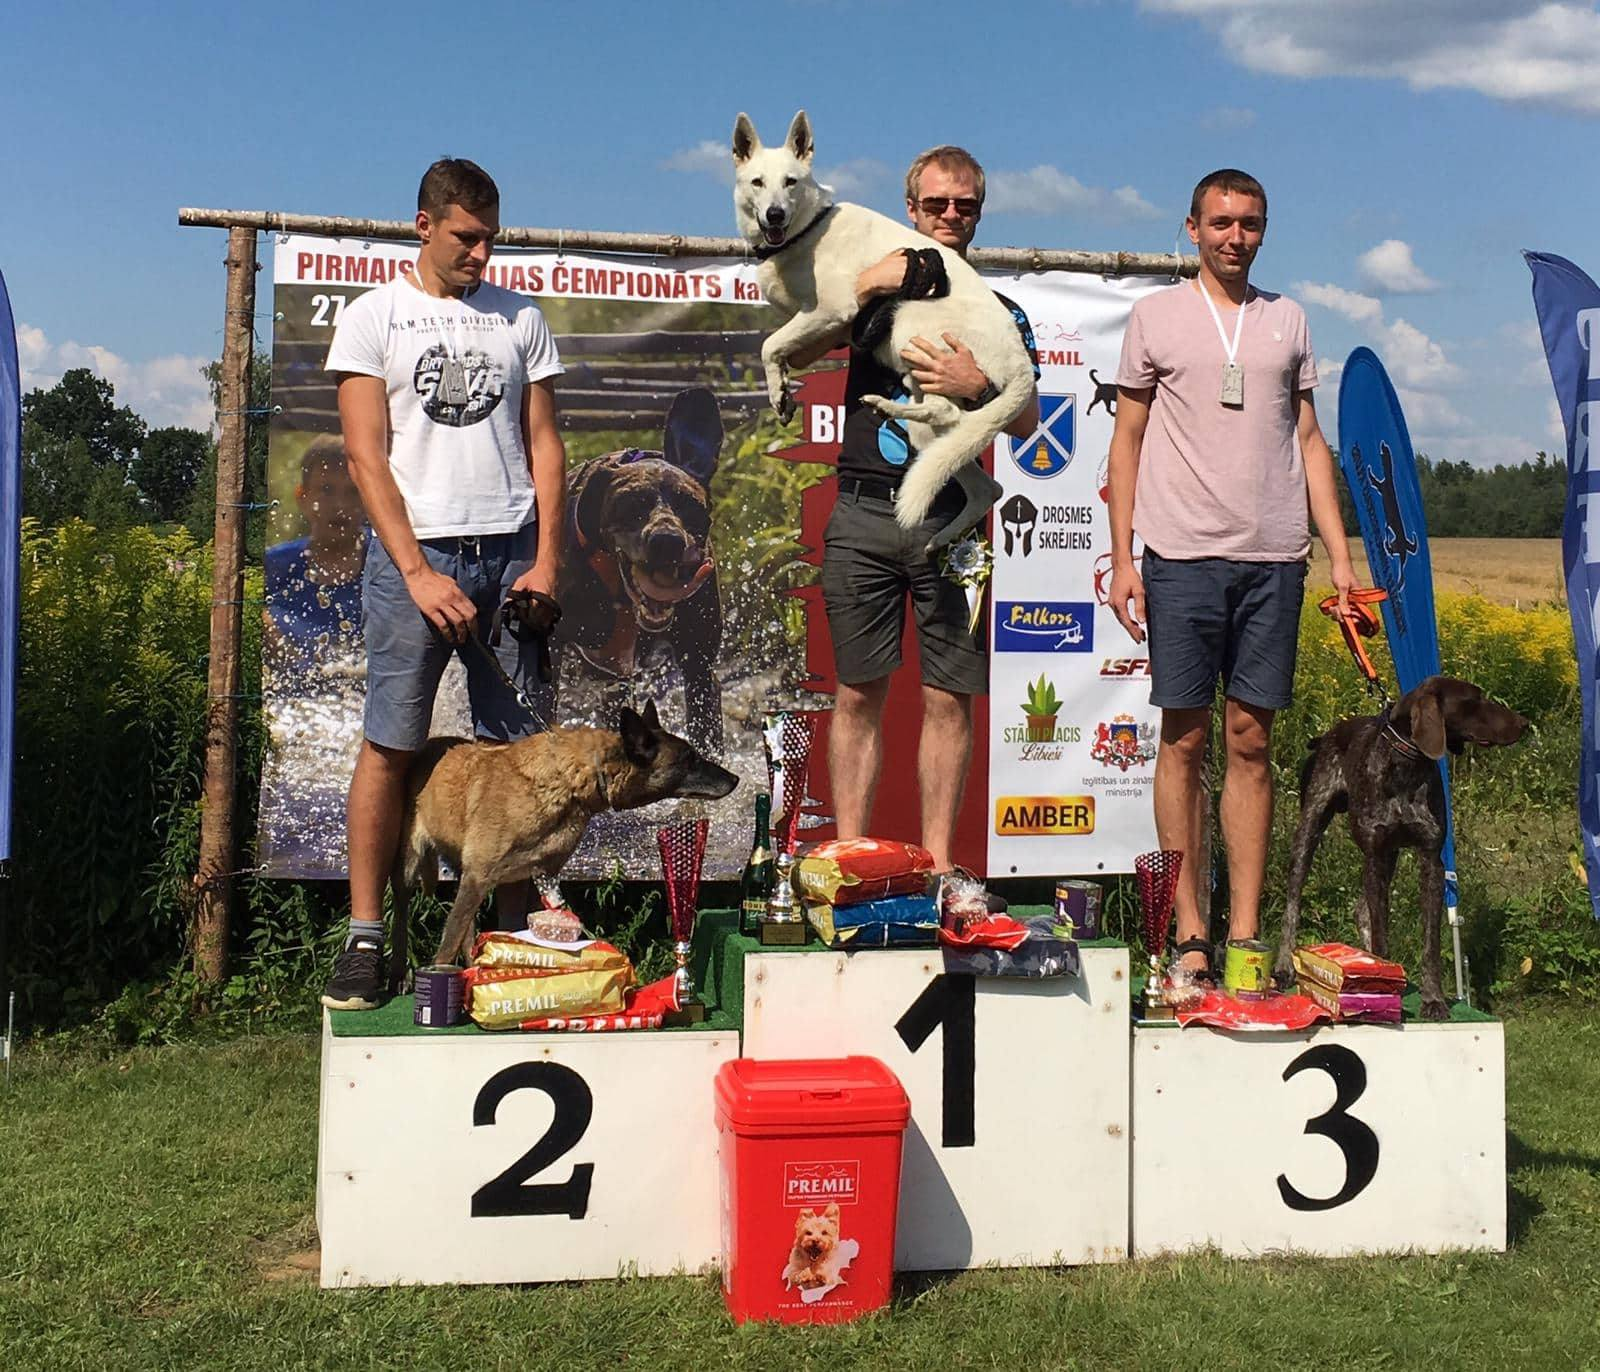 Born to Win Warrior Tyson 1 place in Latvian Championship of Canicross Obstacle Course Individual and 2 place with Team Baltosport! 1